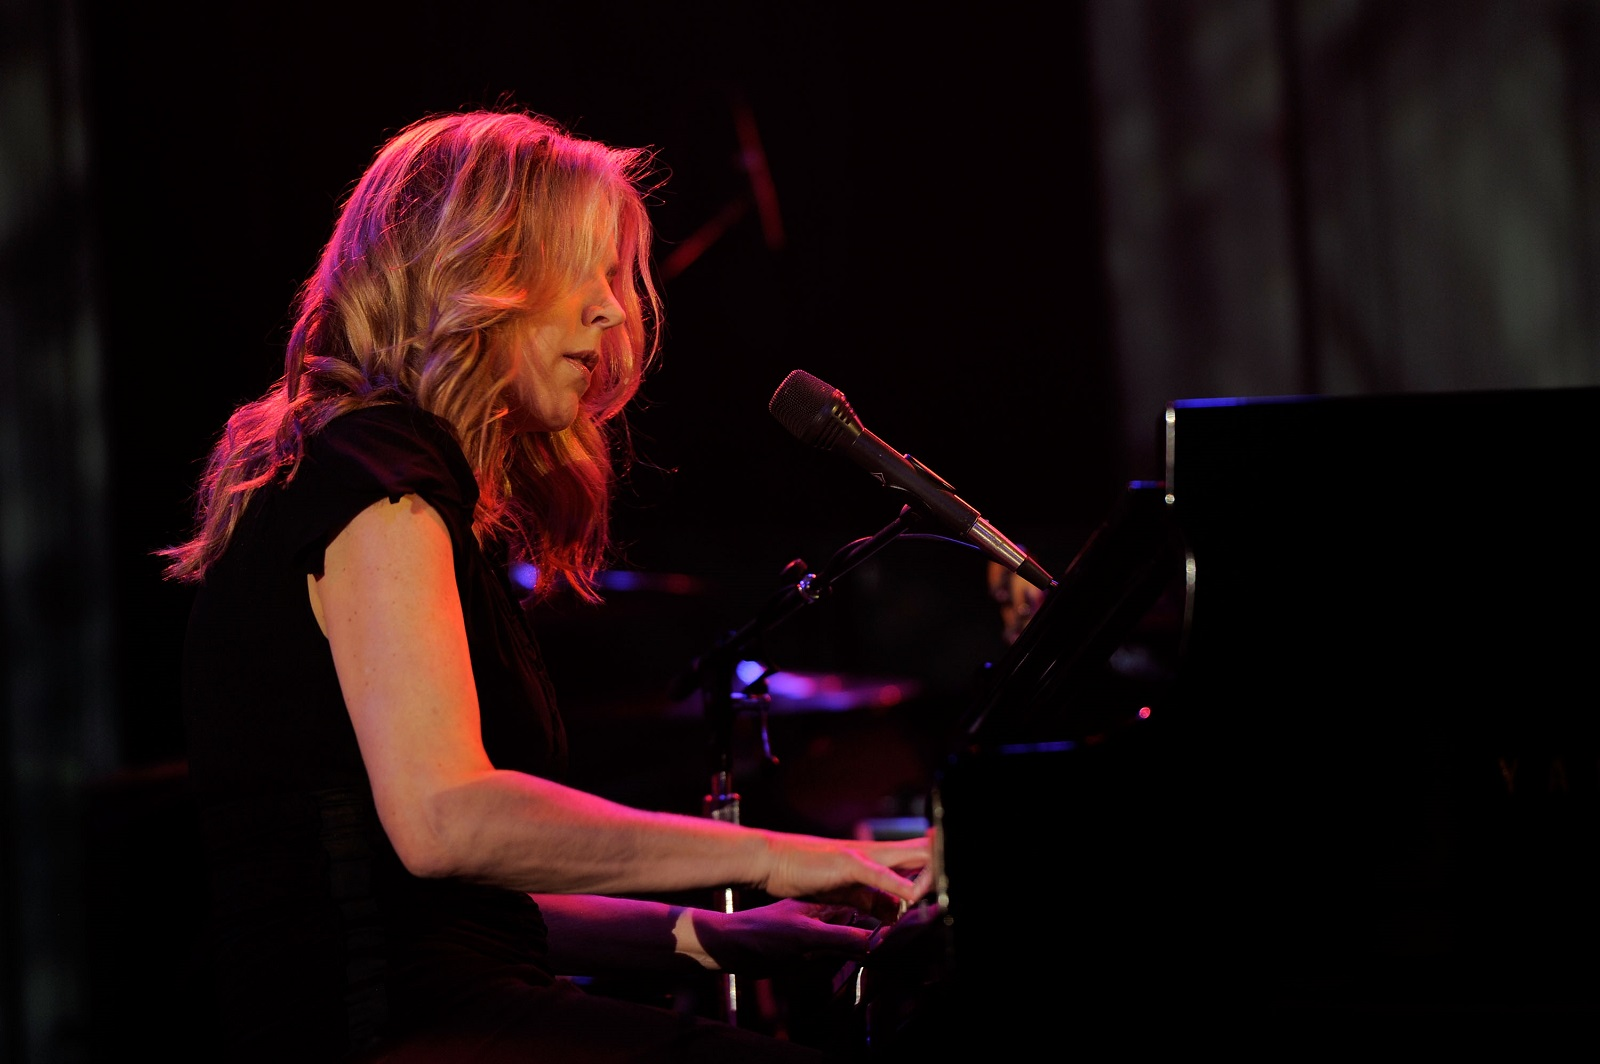 Diana Krall onstage in 2012 in 2012 in Beverly Hills. (Larry Busacca/Getty Images For The Recording Academy)